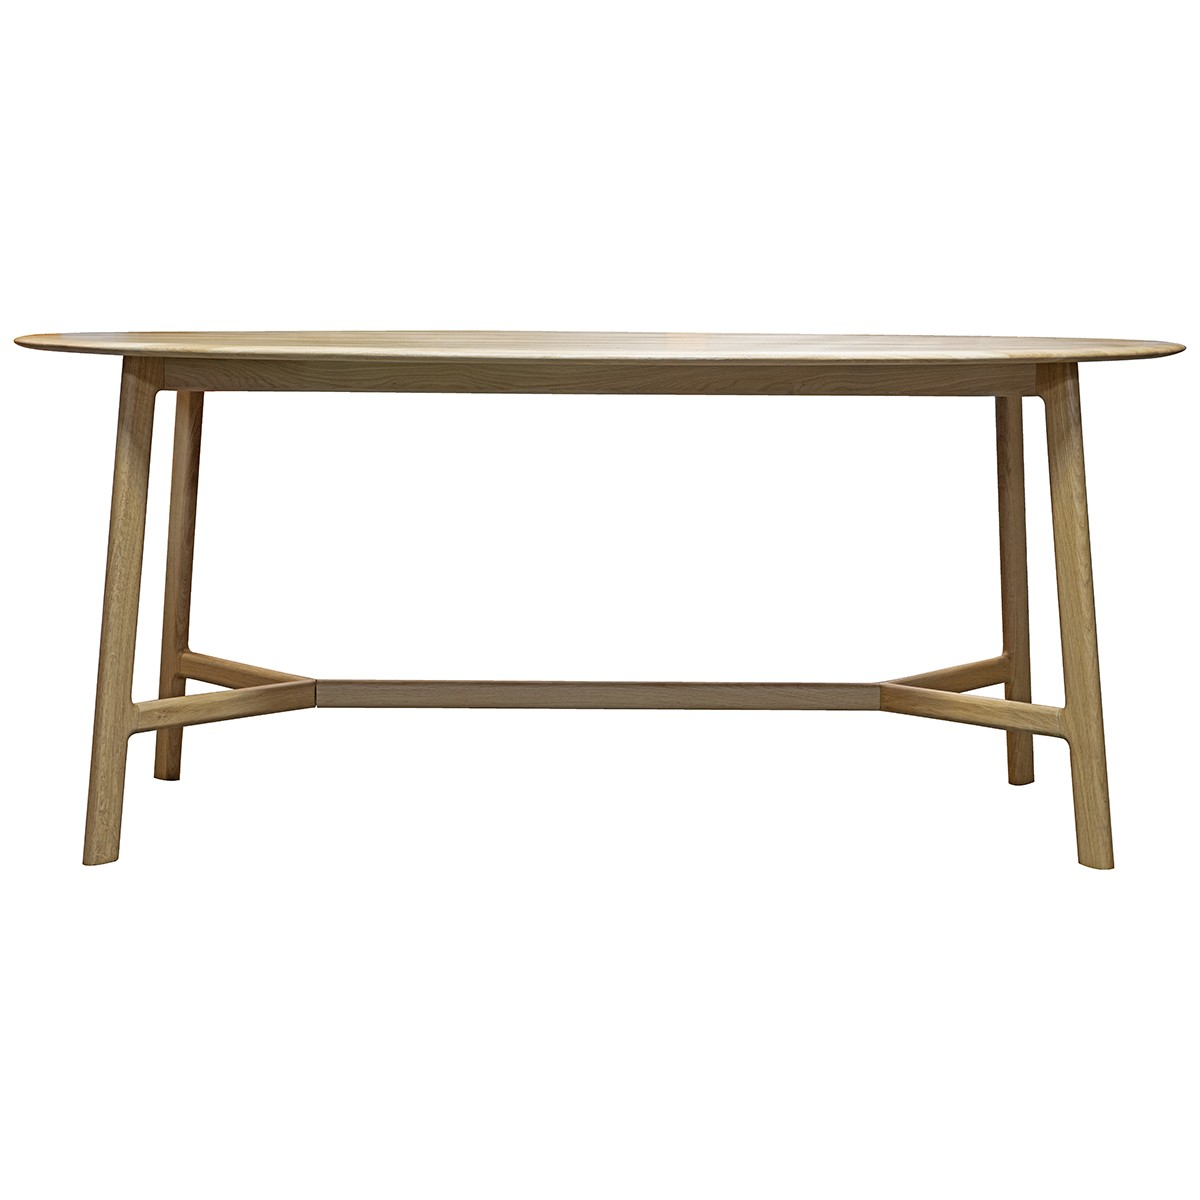 Marrero Oak Timber Oval Dining Table, 180cm